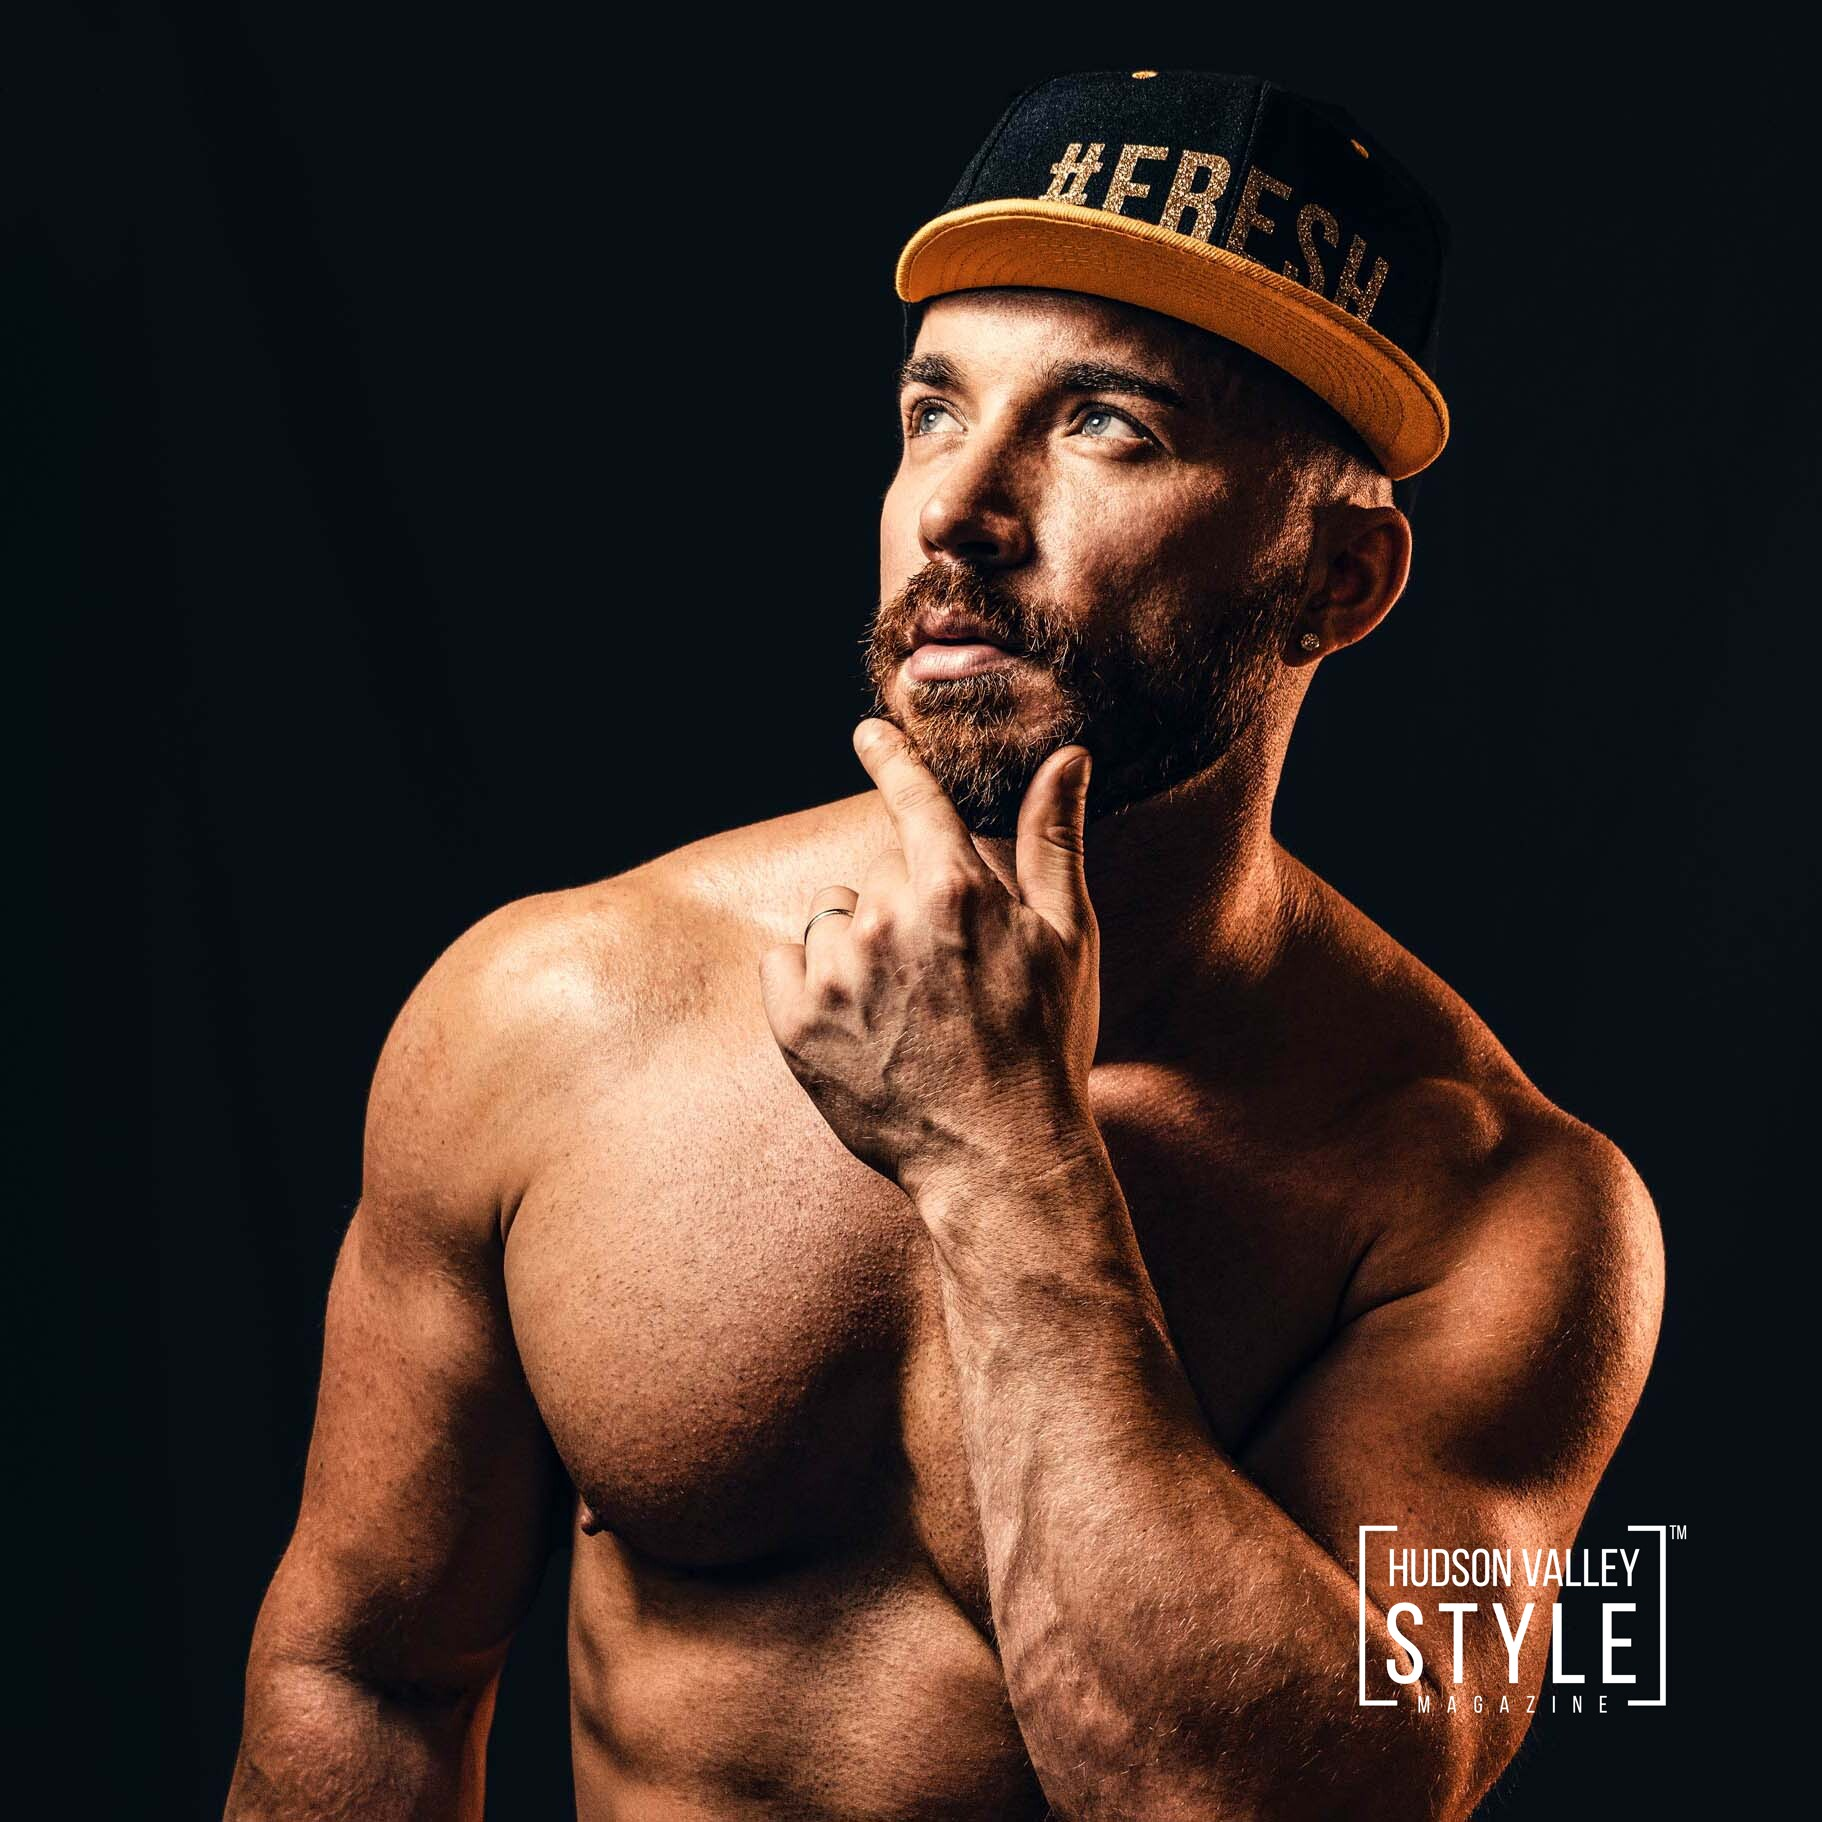 Healthy Eating Tips for Your Active Lifestyle in the Hudson Valley – by Maxwell Alexander, MA, BFA, Certified Elite Fitness Trainer, Certified Bodybuilding Coach, Certified Sports Nutrition Coach – New York Fitness Photography by Duncan Avenue Studios